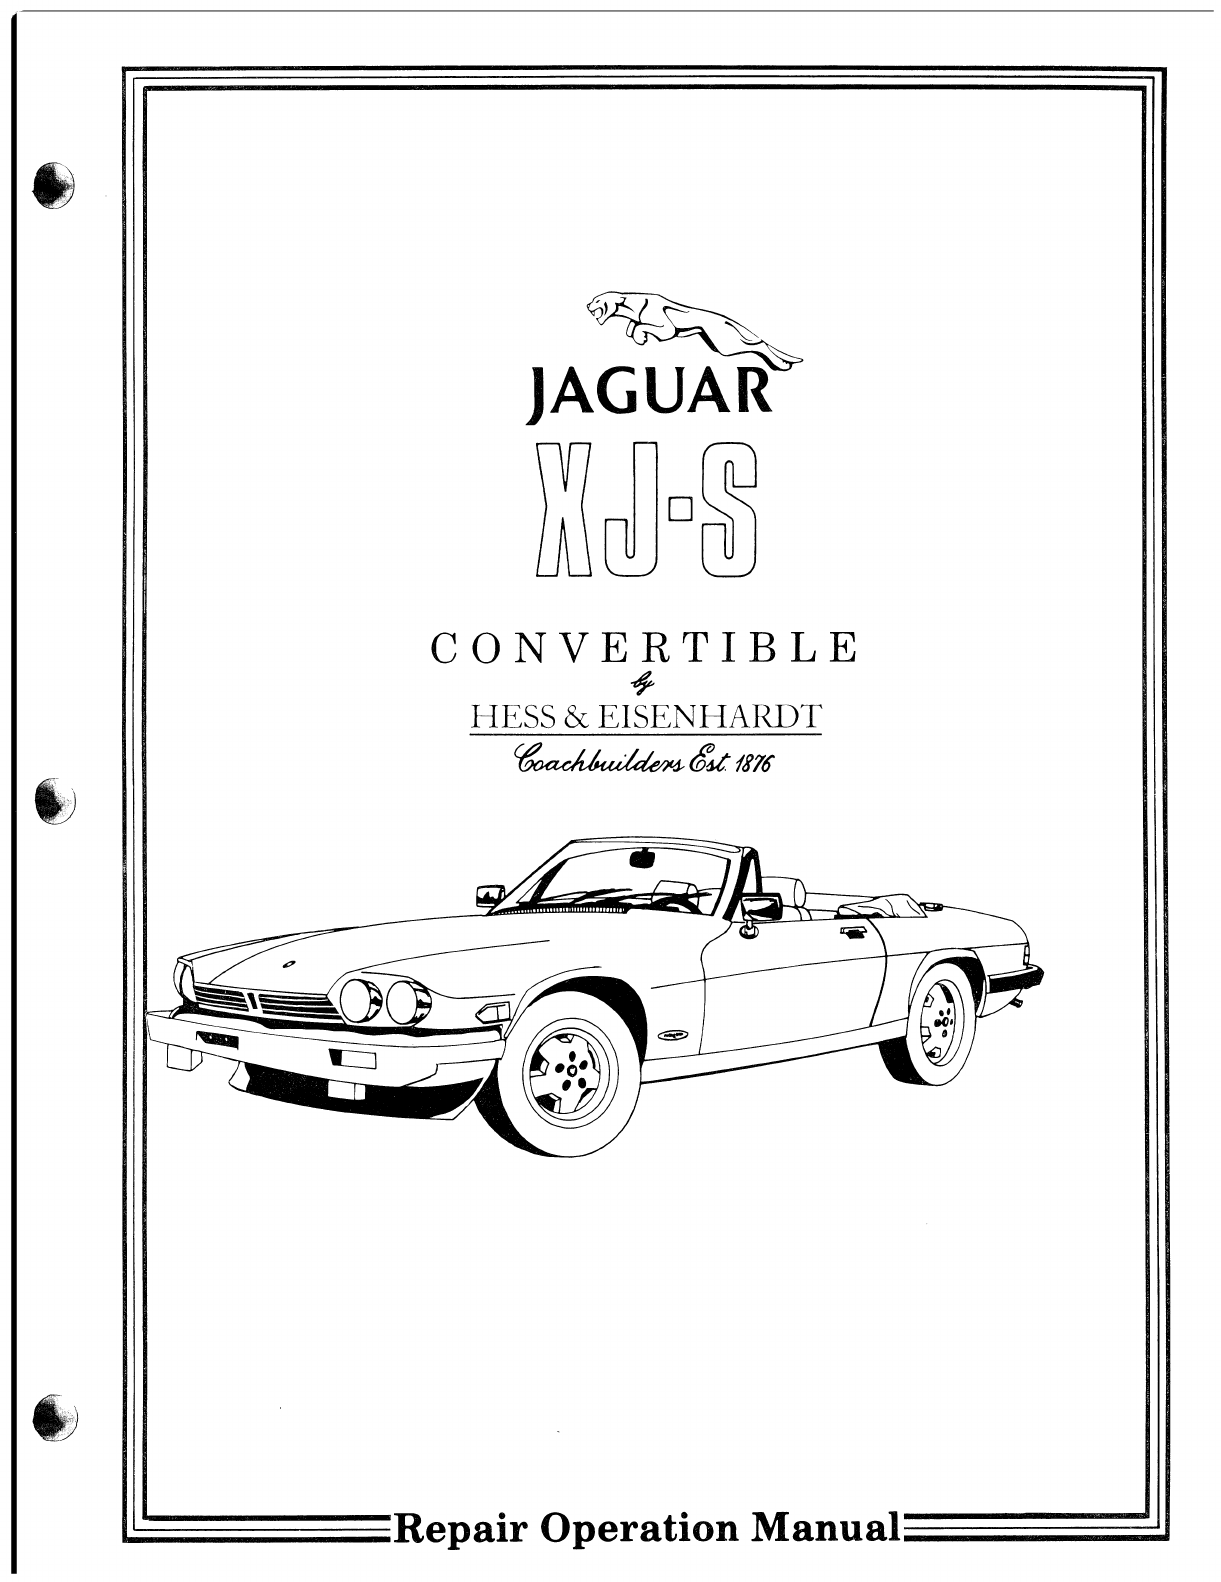 1991 jaguar xjs wiring diagram pdf